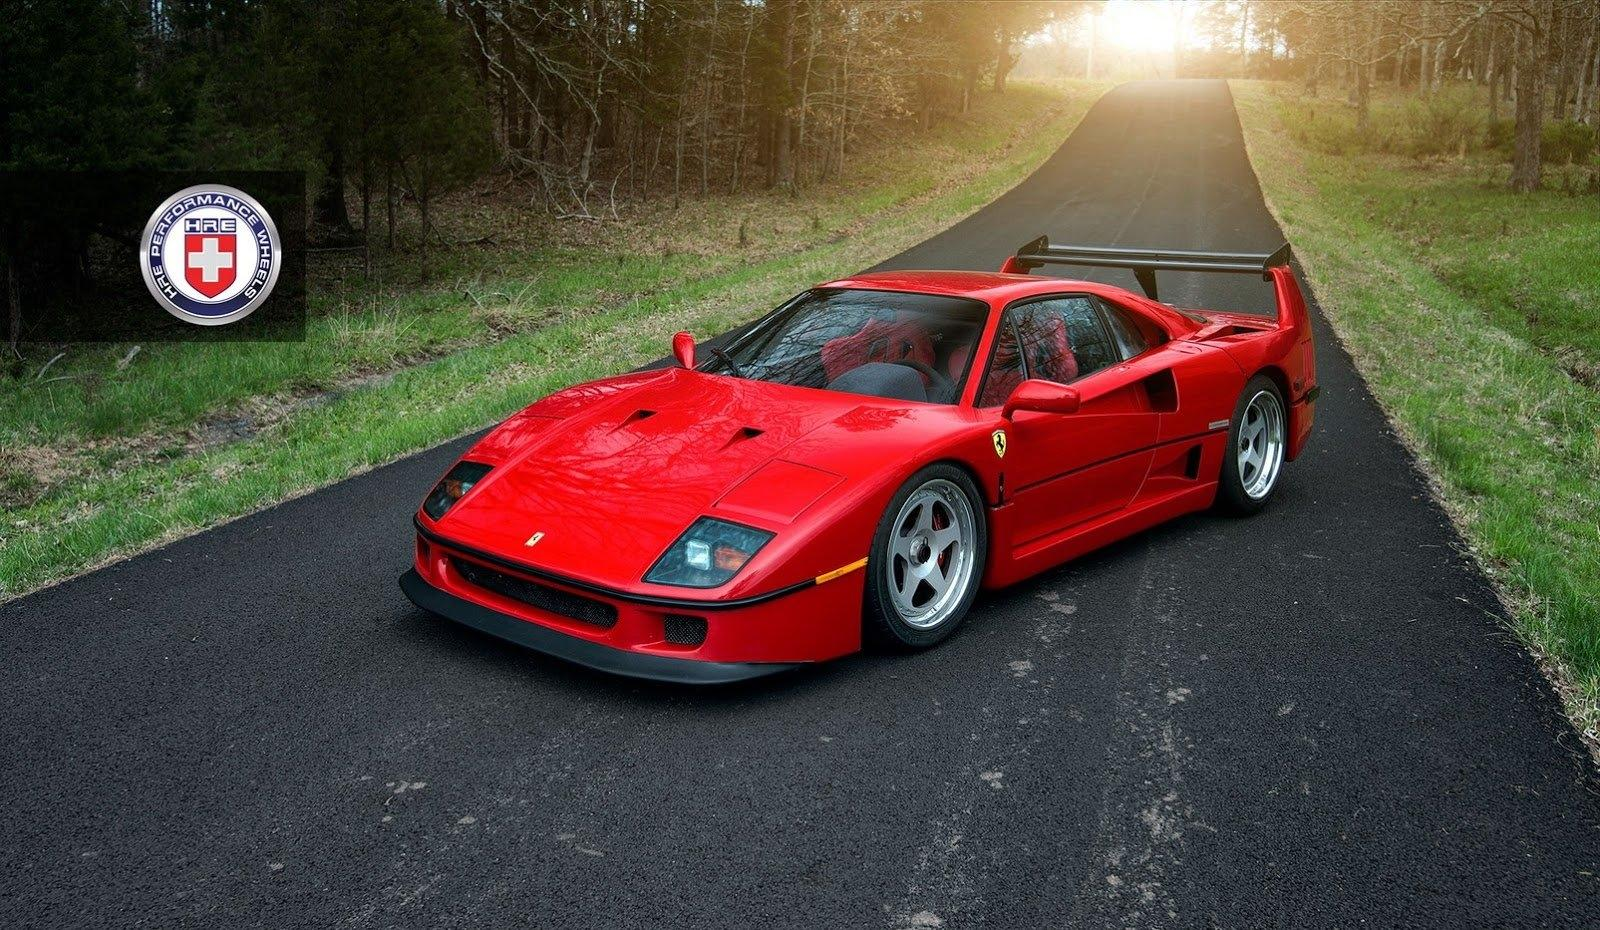 Ferrari F40 Wallpaper Hd Download